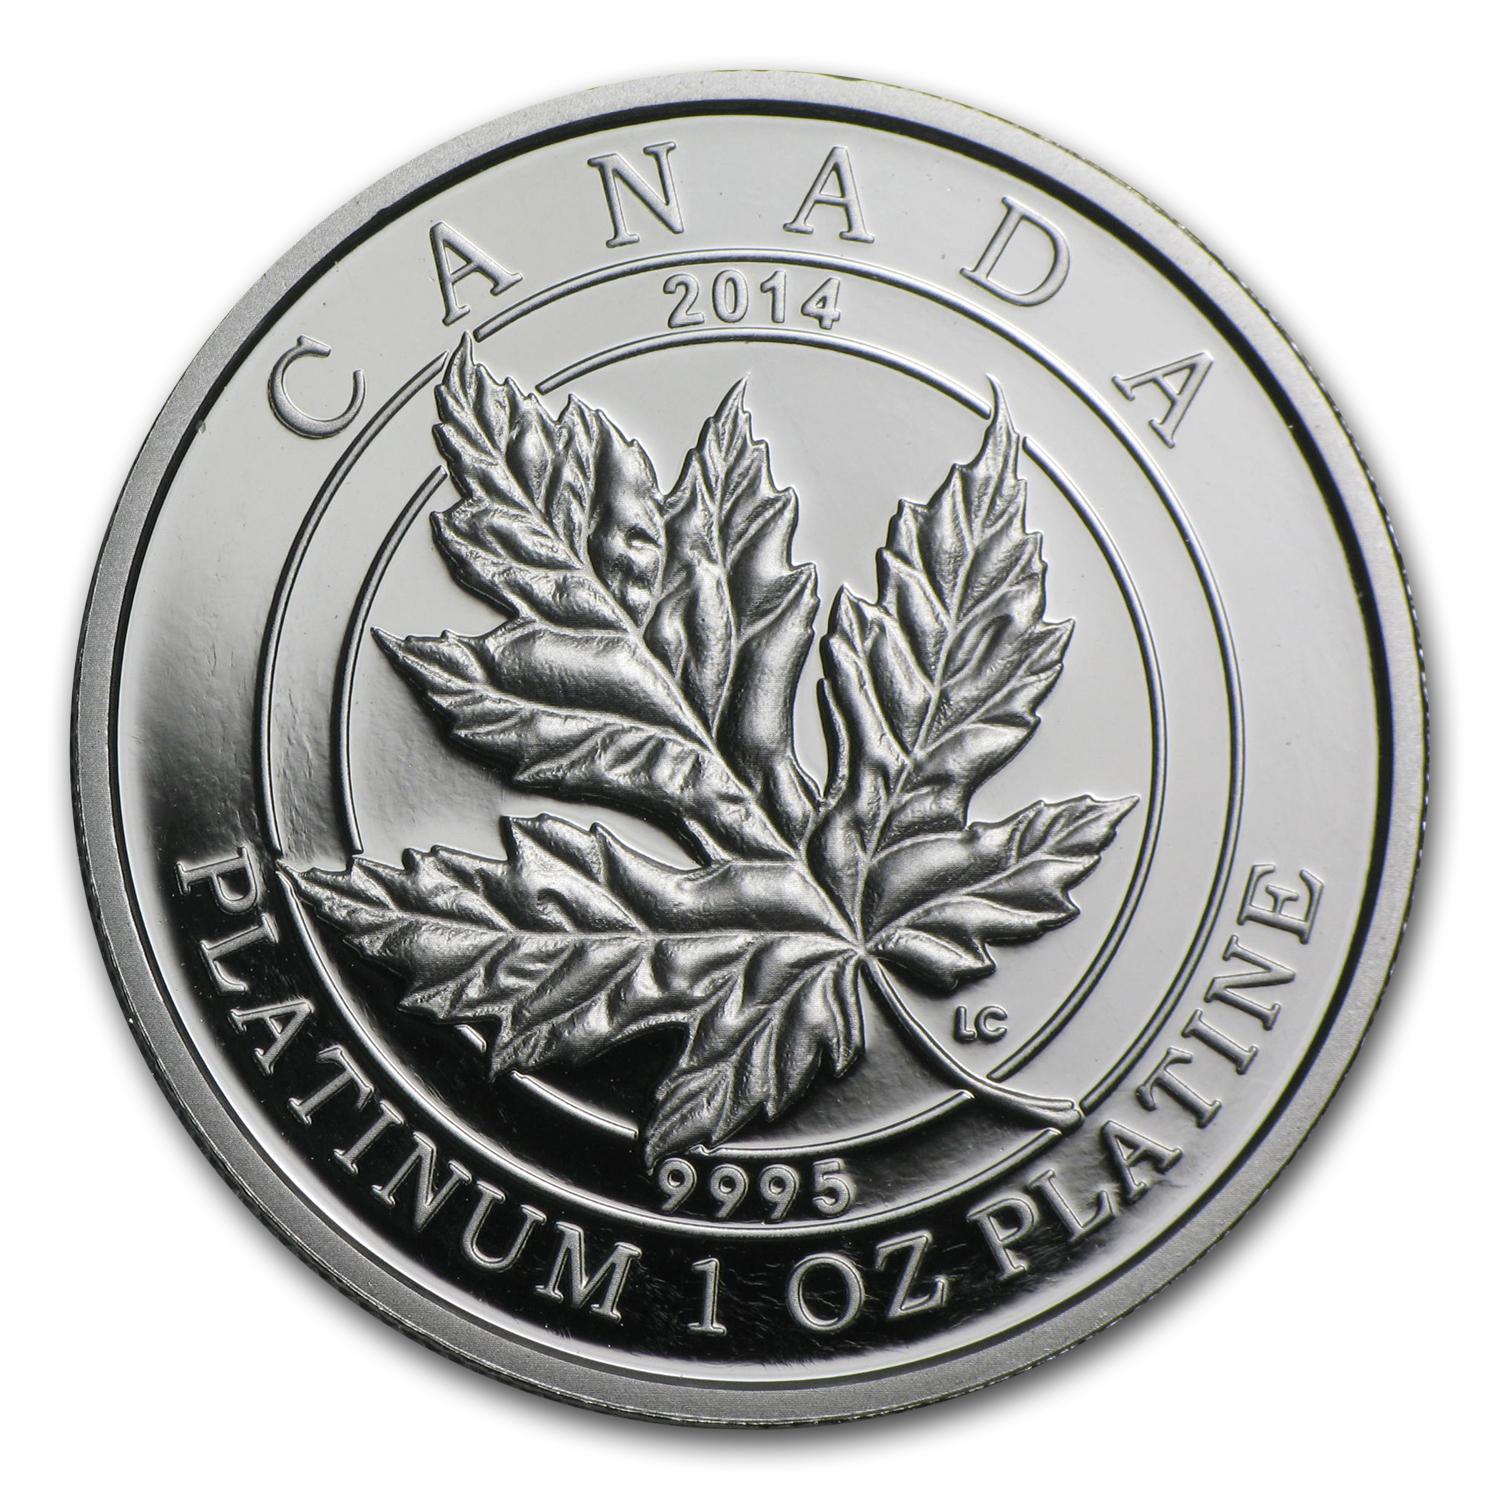 2014 Canada 1 oz Proof Platinum $300 Maple Leaf Forever